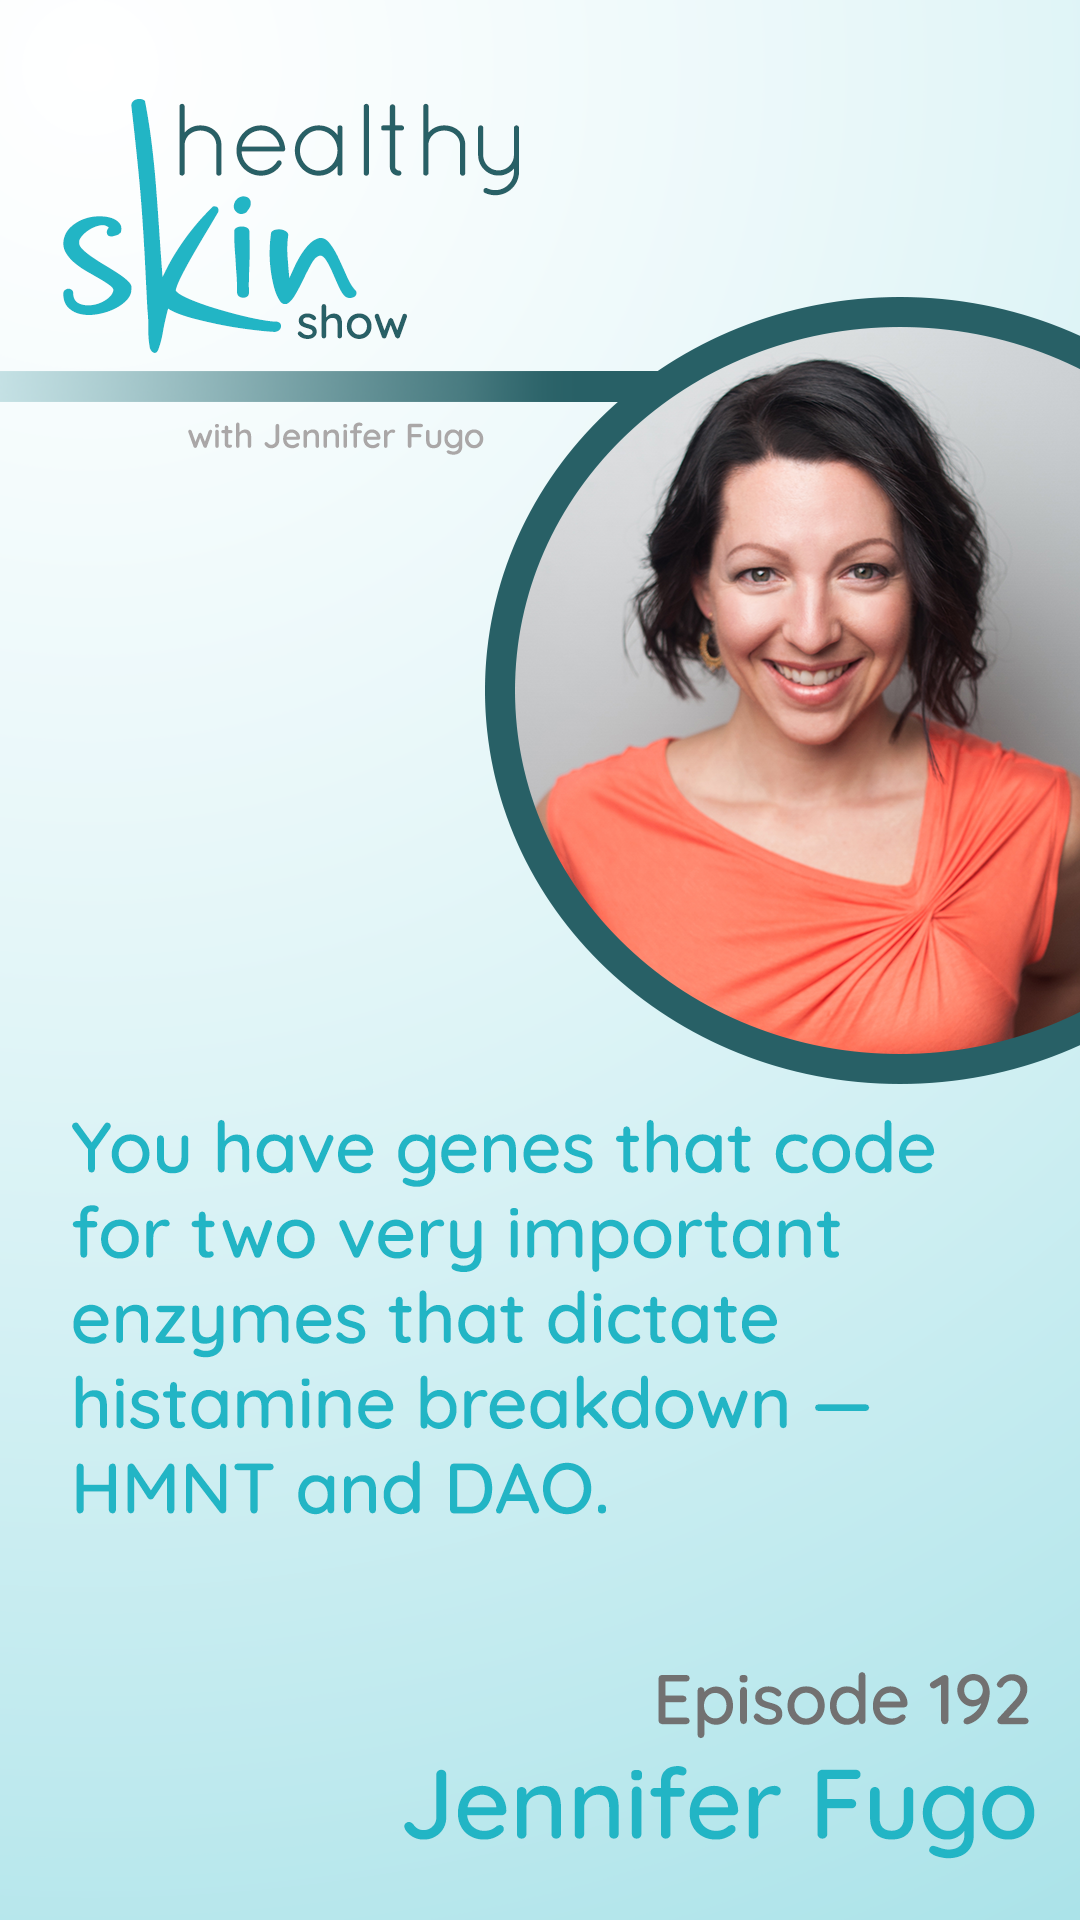 You have genes that code for two very important enzymes that dictate histamine breakdown -- HMNT and DAO.